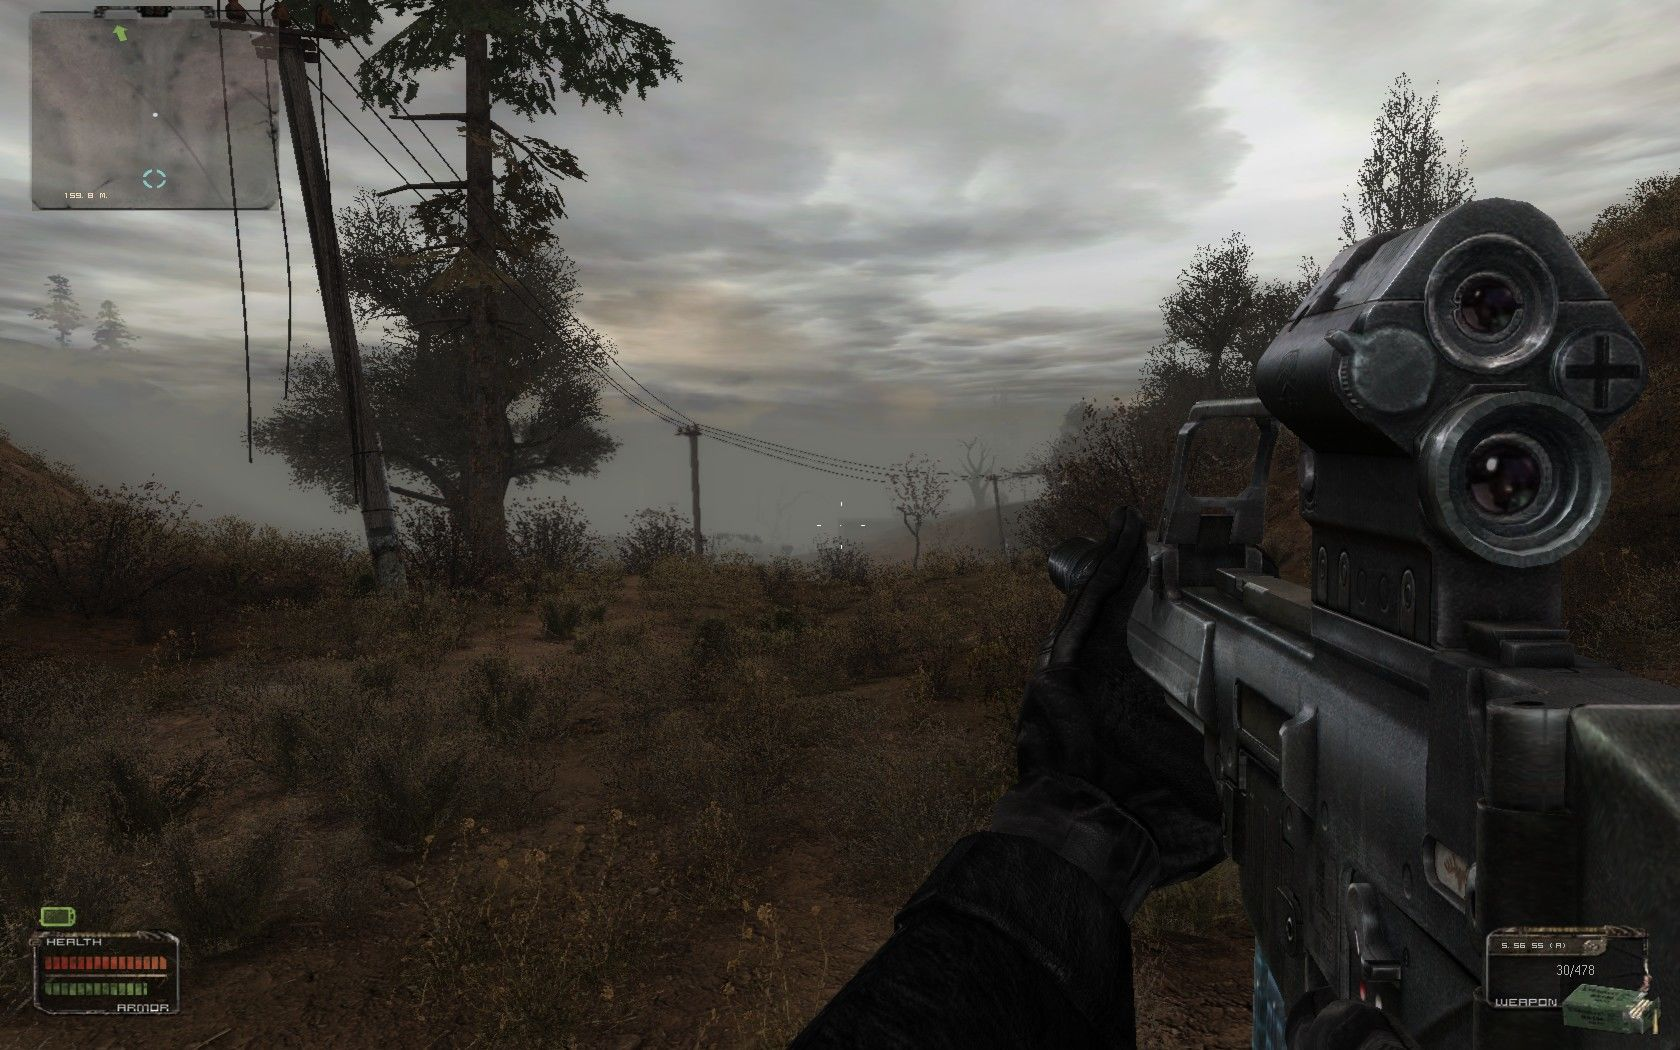 S.T.A.L.K.E.R.: Shadow of Chernobyl Windows Lake Yantar, looking gloomy as ever (Stalker 2009 Complete)